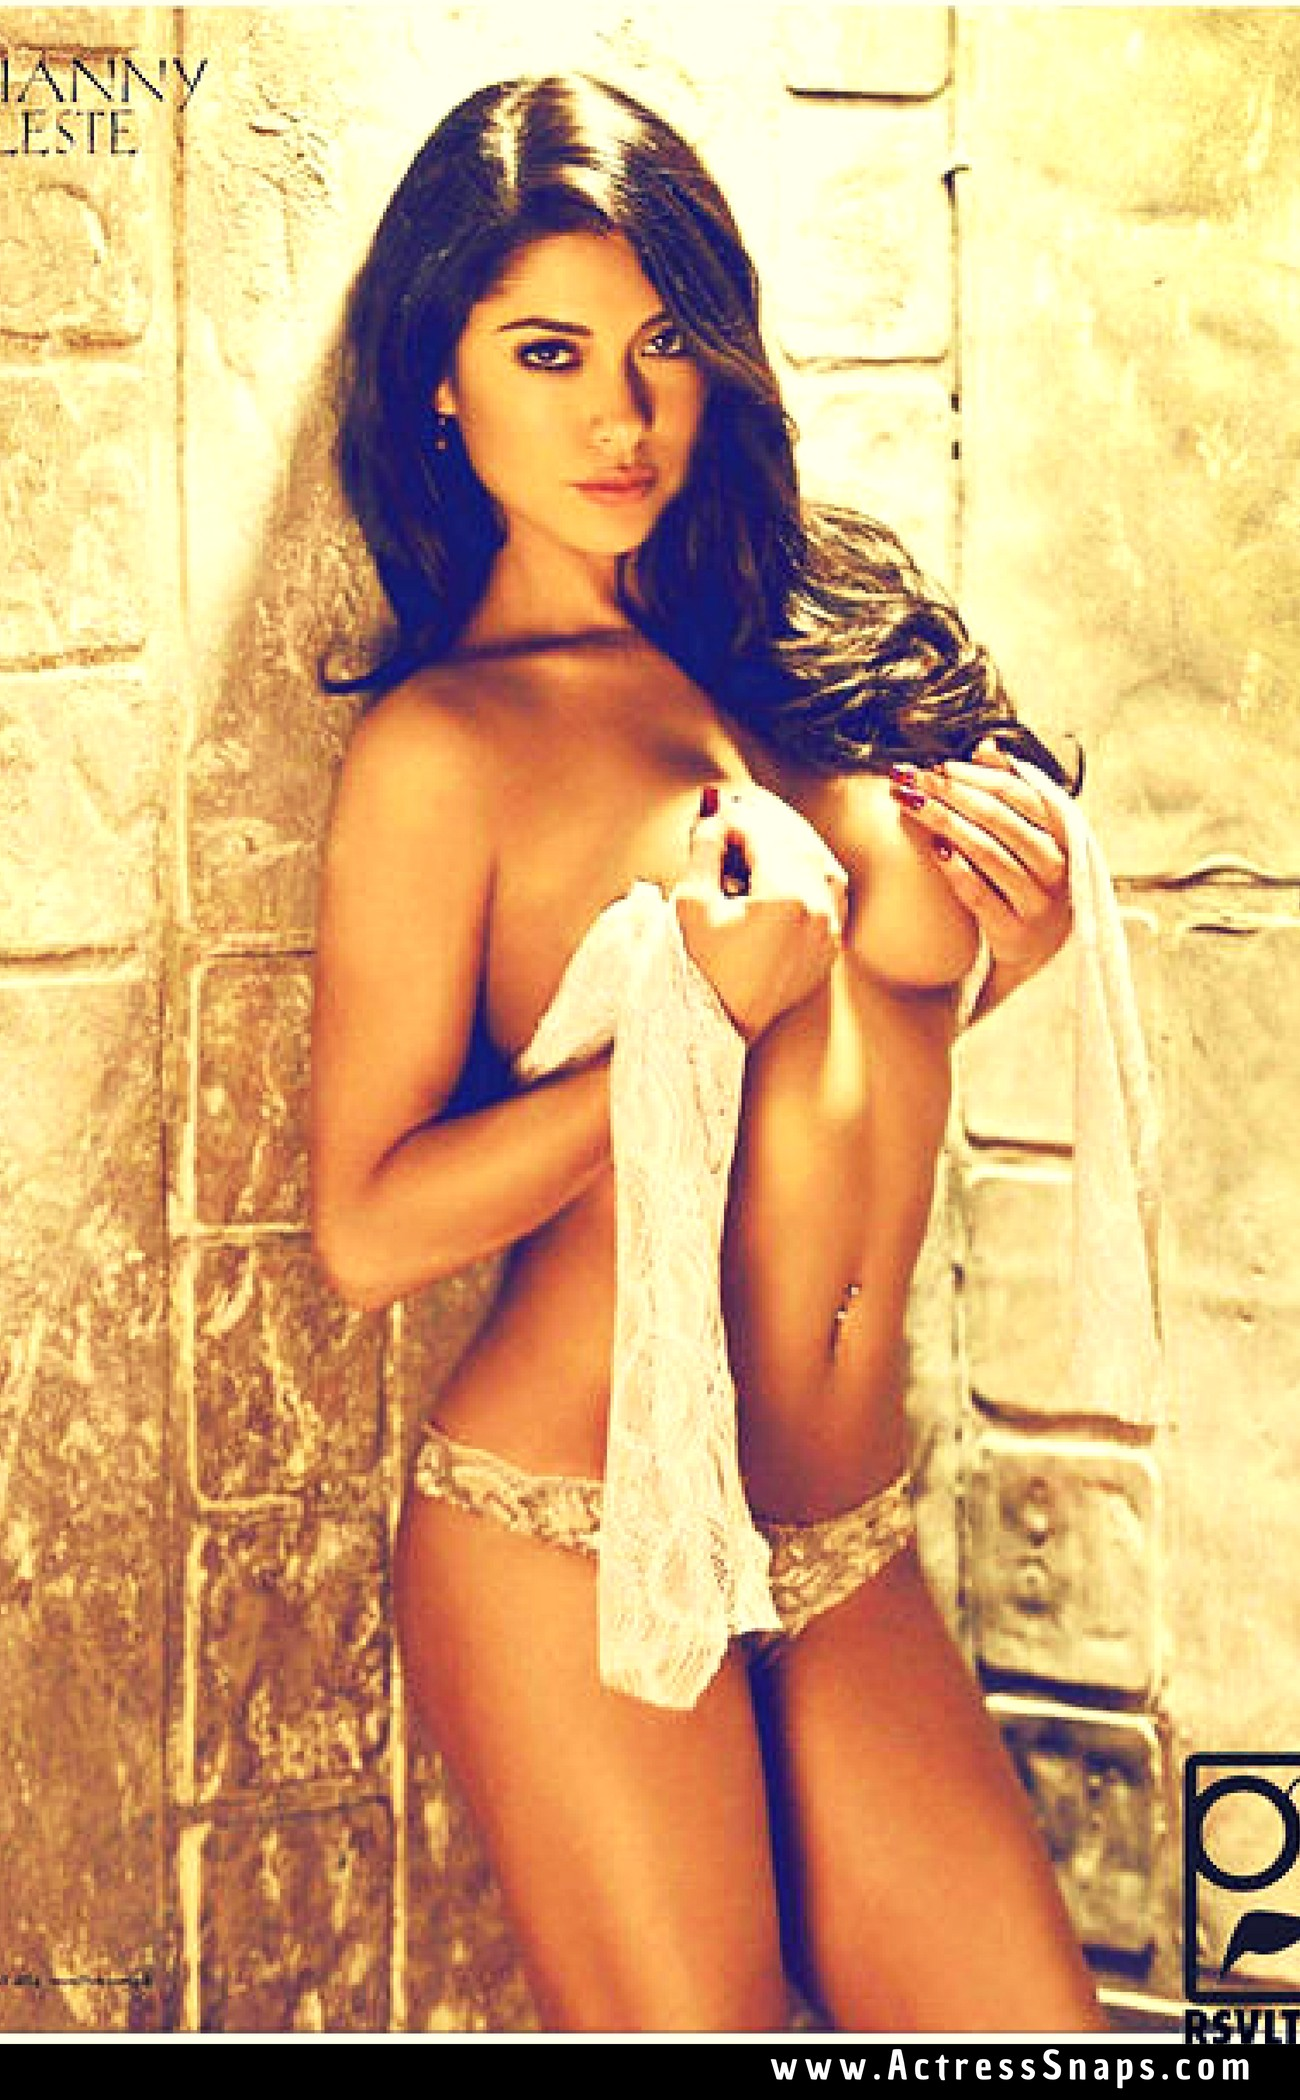 Arianny Celeste - Sexy Photo Shoot Collection - Sexy Actress Pictures | Hot Actress Pictures - ActressSnaps.com